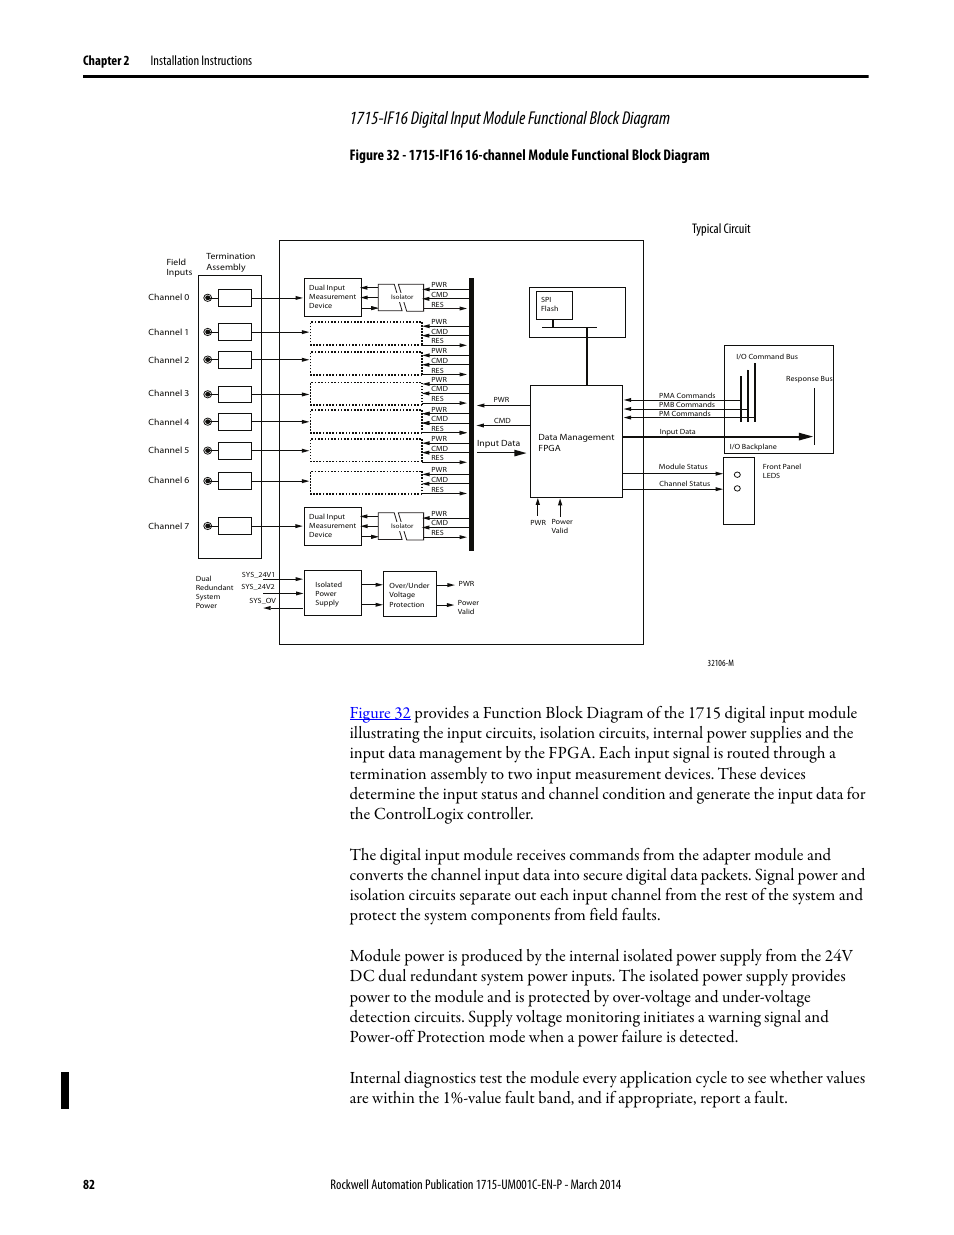 Rockwell Automation 1715-OF8I Redundant I/O System User Manual User Manual | Page 82 / 324 | Also for: 1715-IF16 Redundant I/O System User Manual, ...